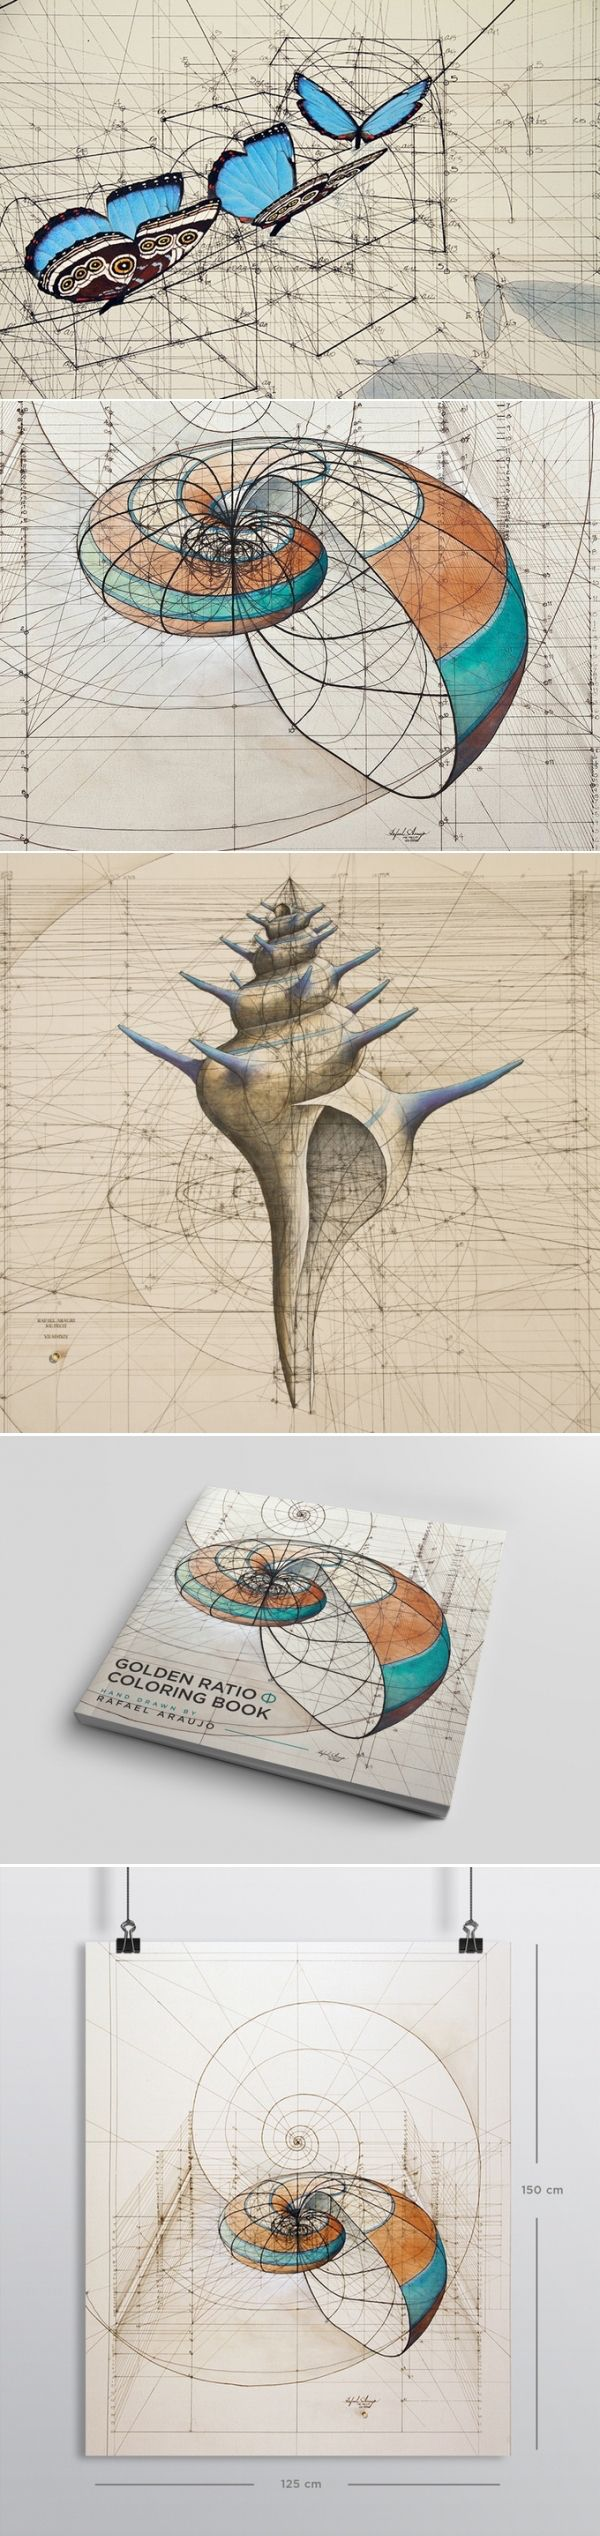 Omg This Is Amazing The Best Coloring Book Golden Ratio Coloring Book By Rafael Araujo Geometry Art Art Design Geometric Art